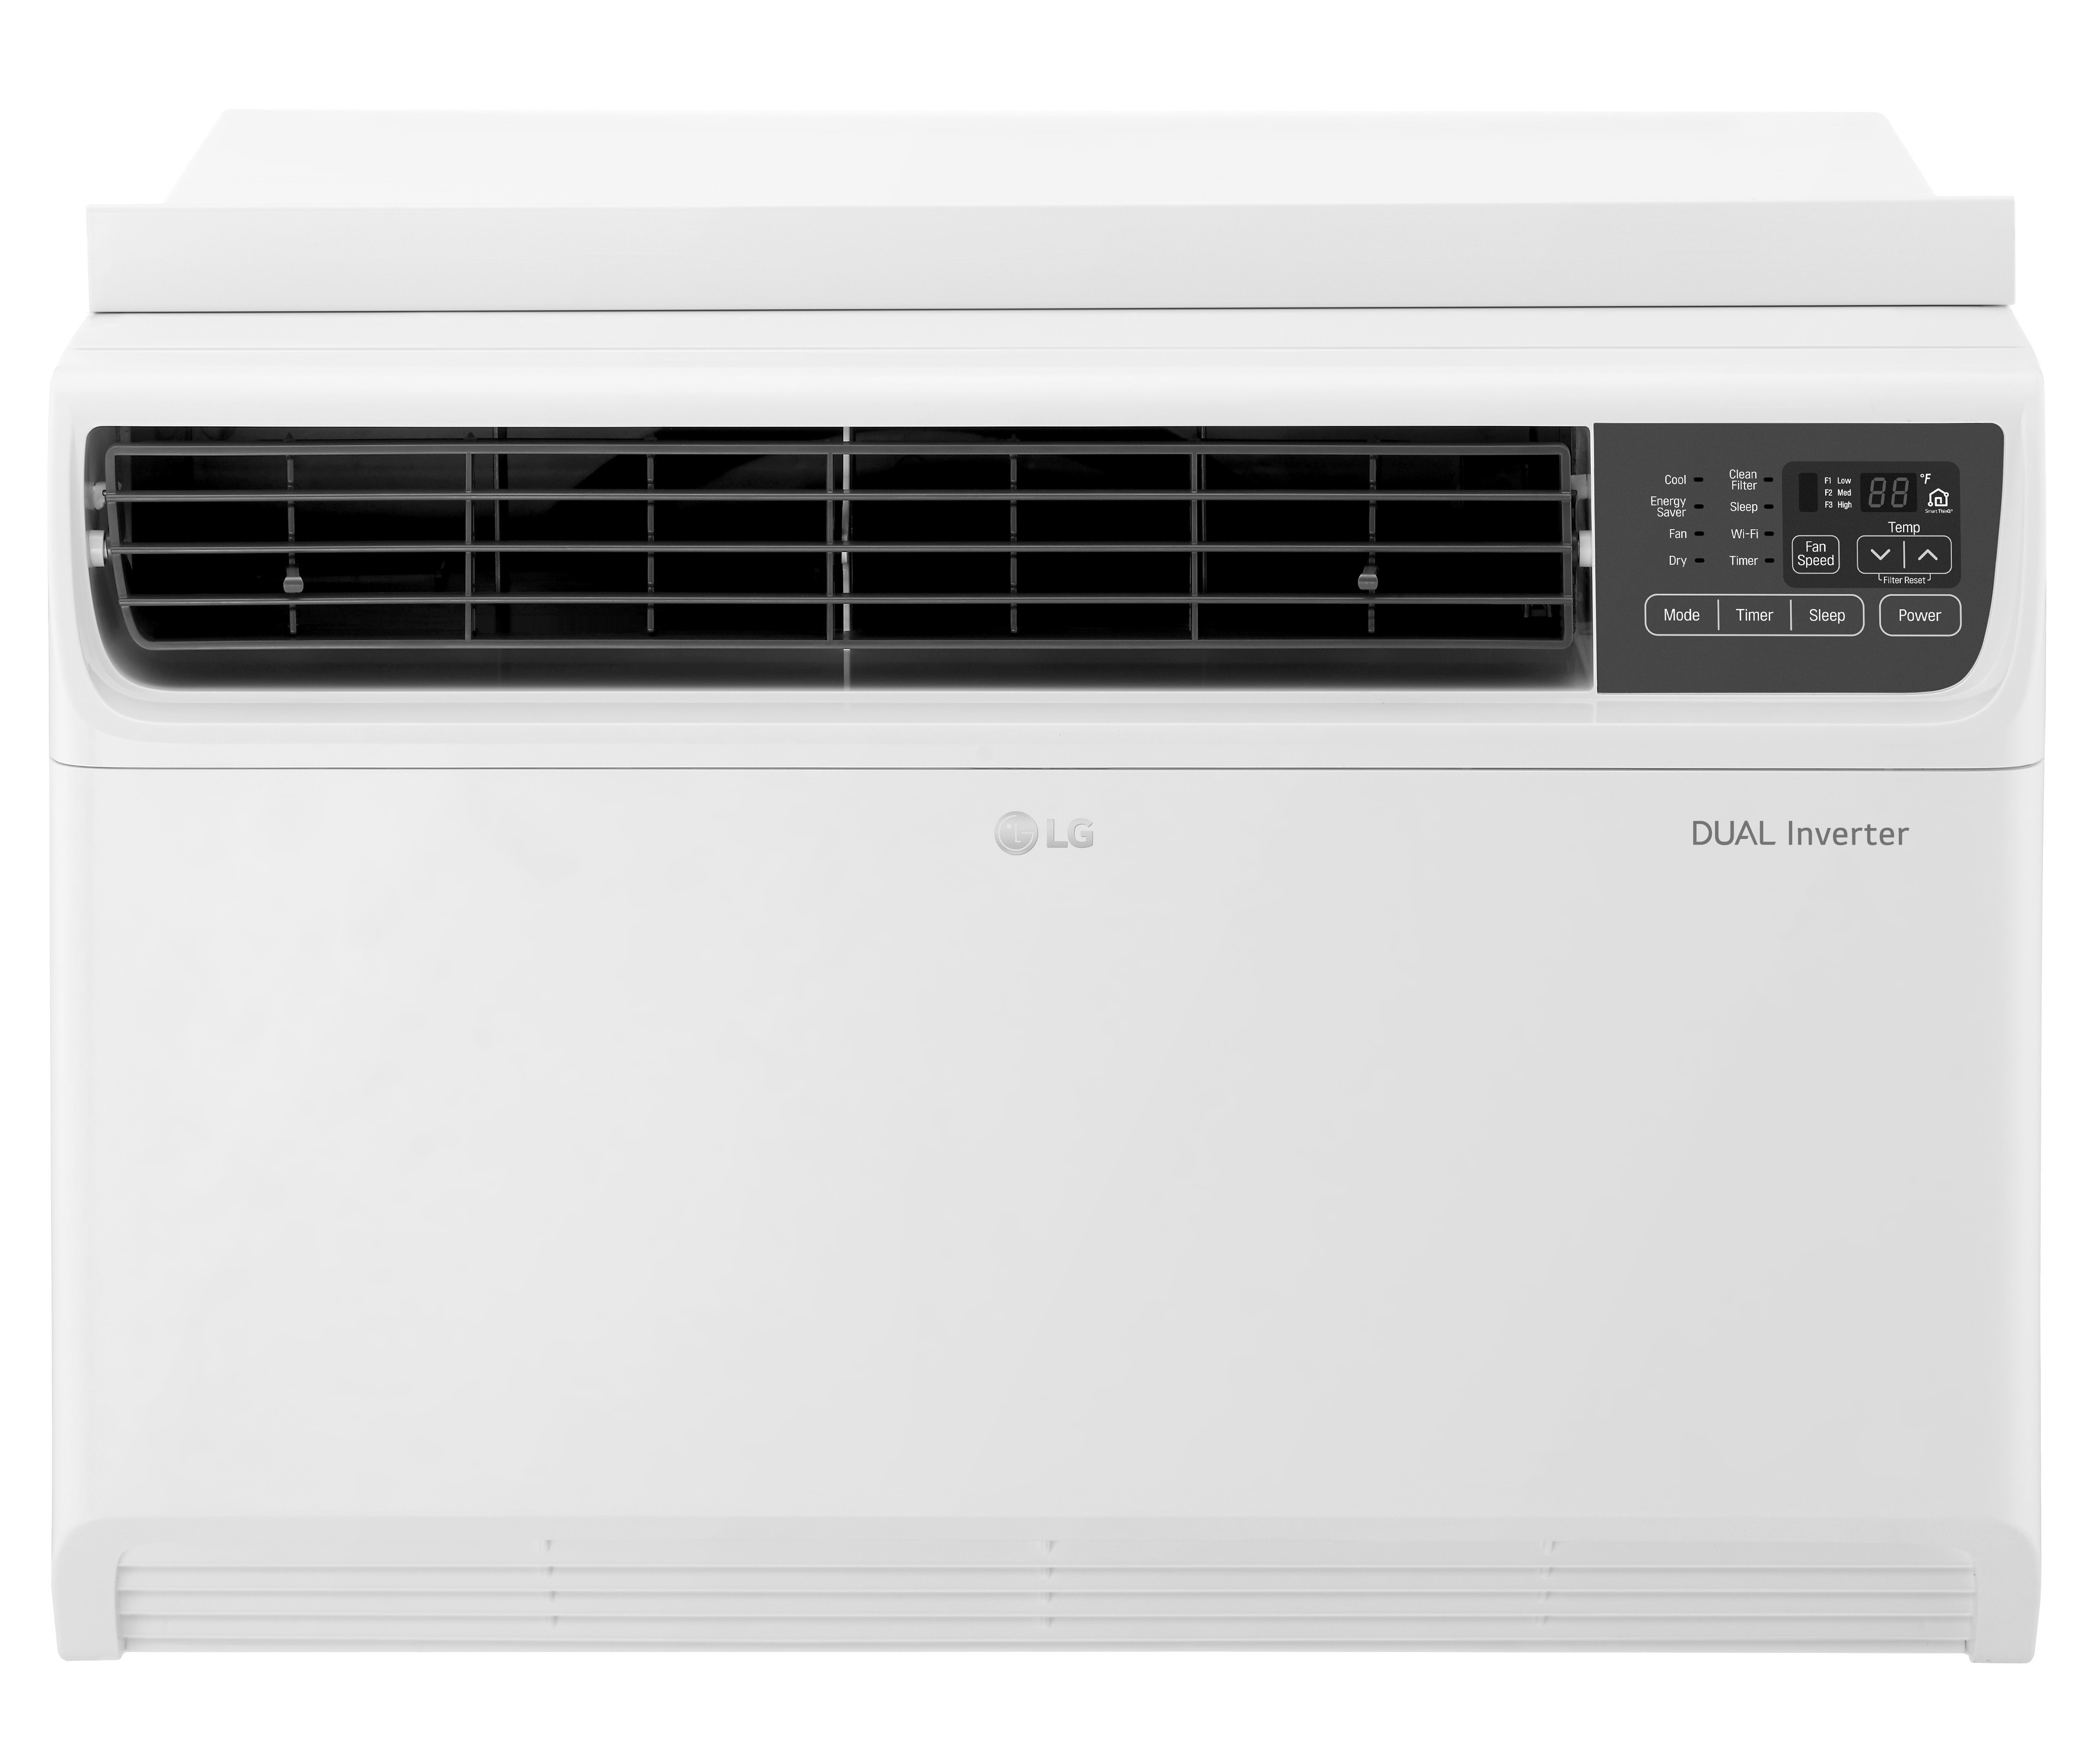 A front view of the LG DUAL Inverter Smart Wi-Fi-enabled Window Air Conditioner